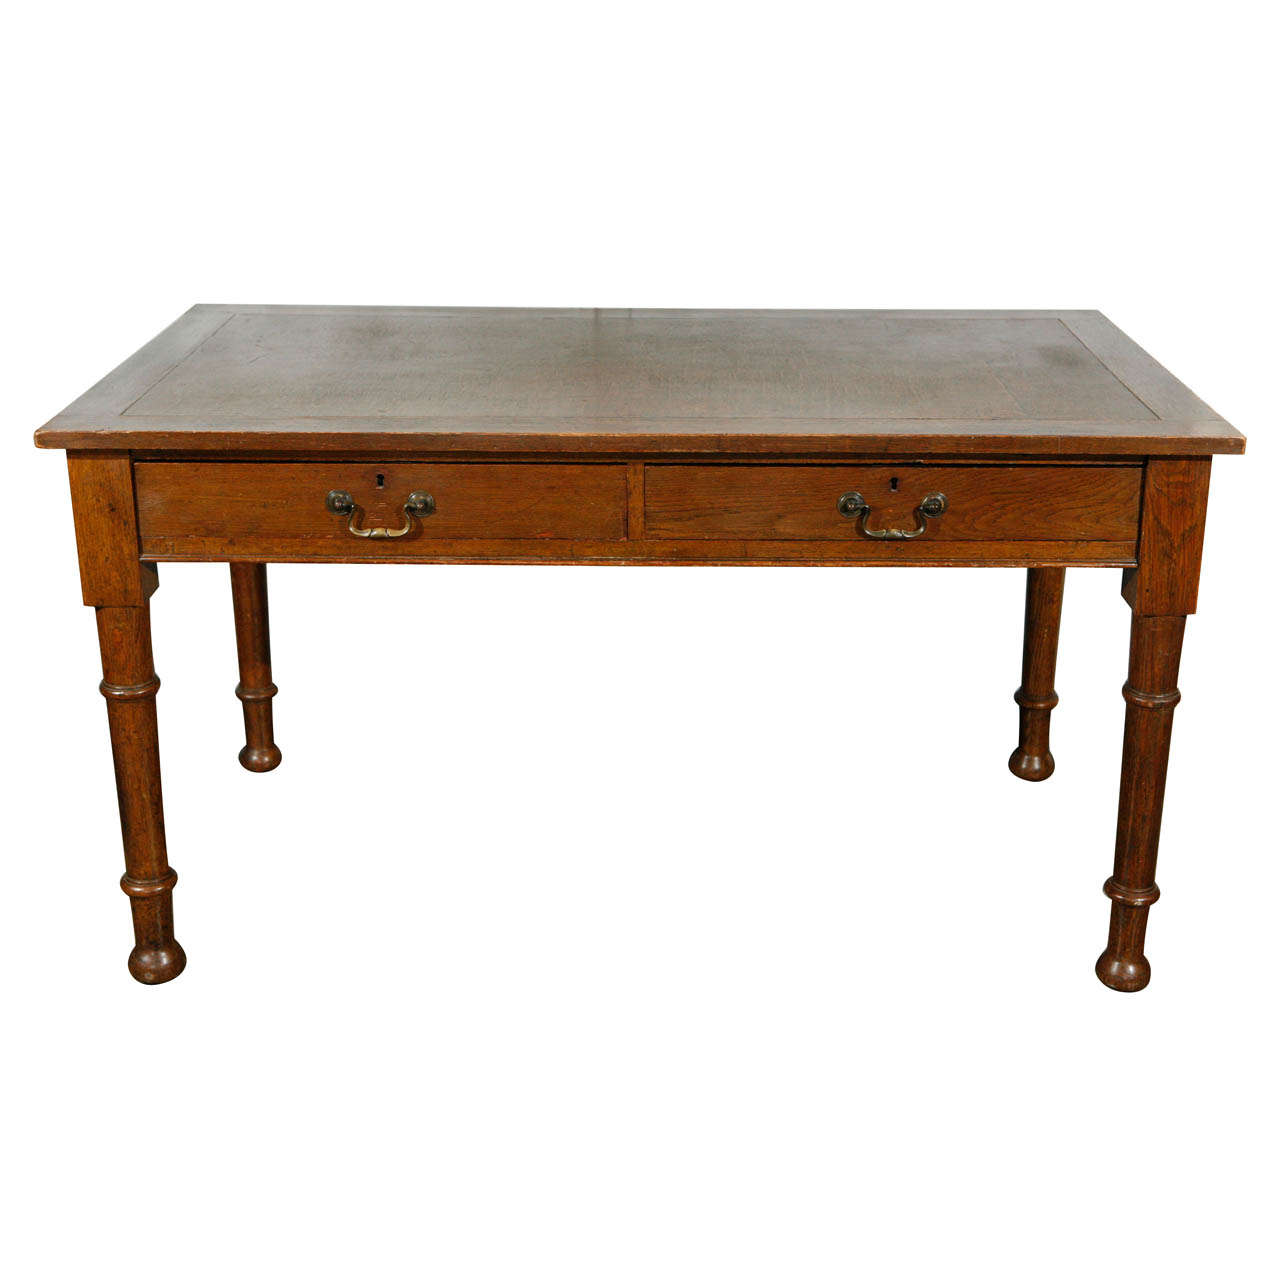 english writing desk 36ʺw × 215ʺd × 385ʺh made with great quality and care in england around the year 1960, this antique style english mahogany writing desk is a well-made and beautiful piece of furniture it will suite any office, study, or other area of the home.